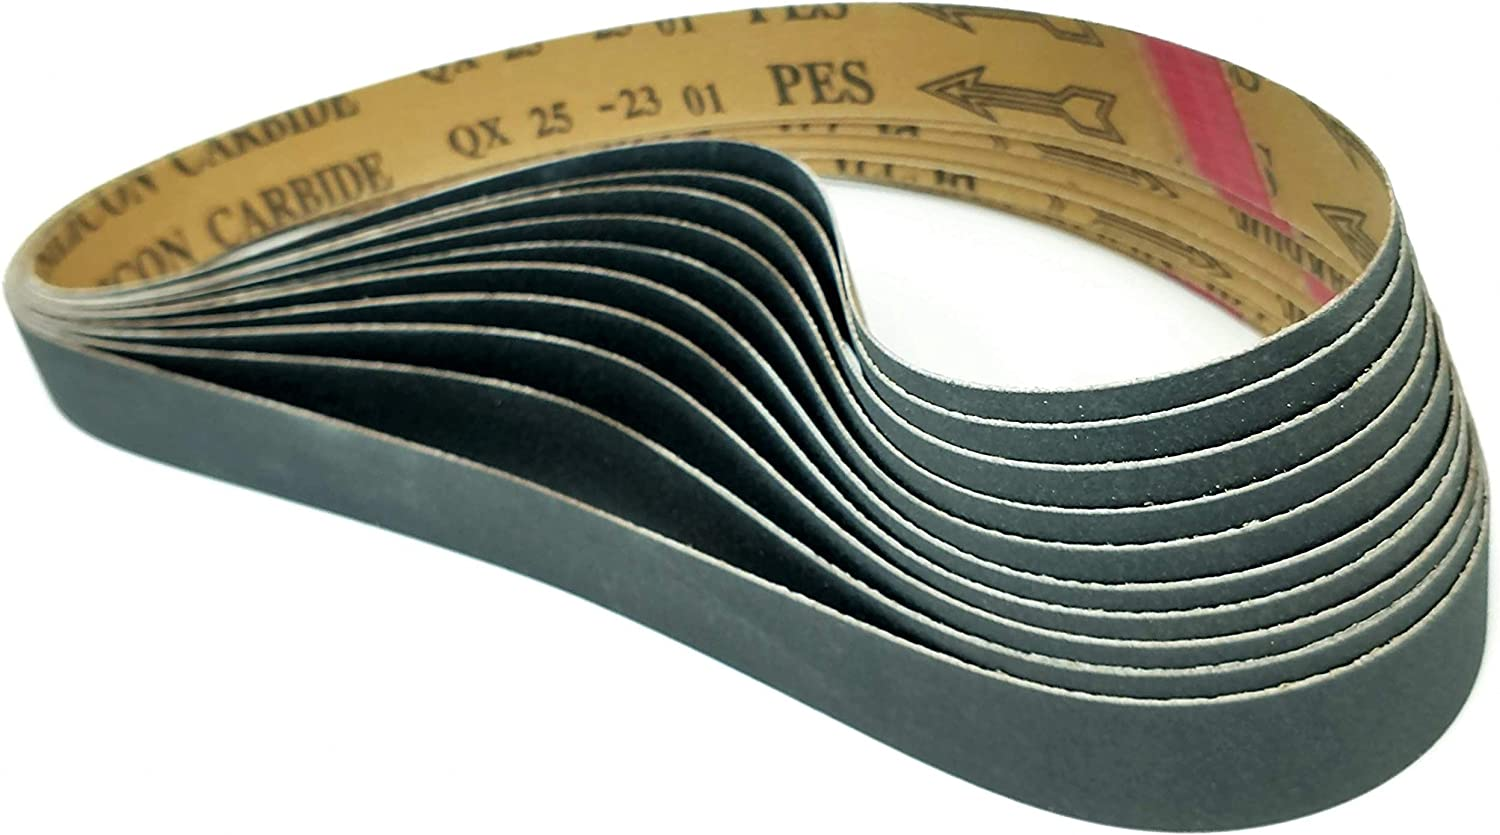 1 x 30 Sanding Belt Film-Sharpening 10pc or 30pc Combo of Your Preferred Grit